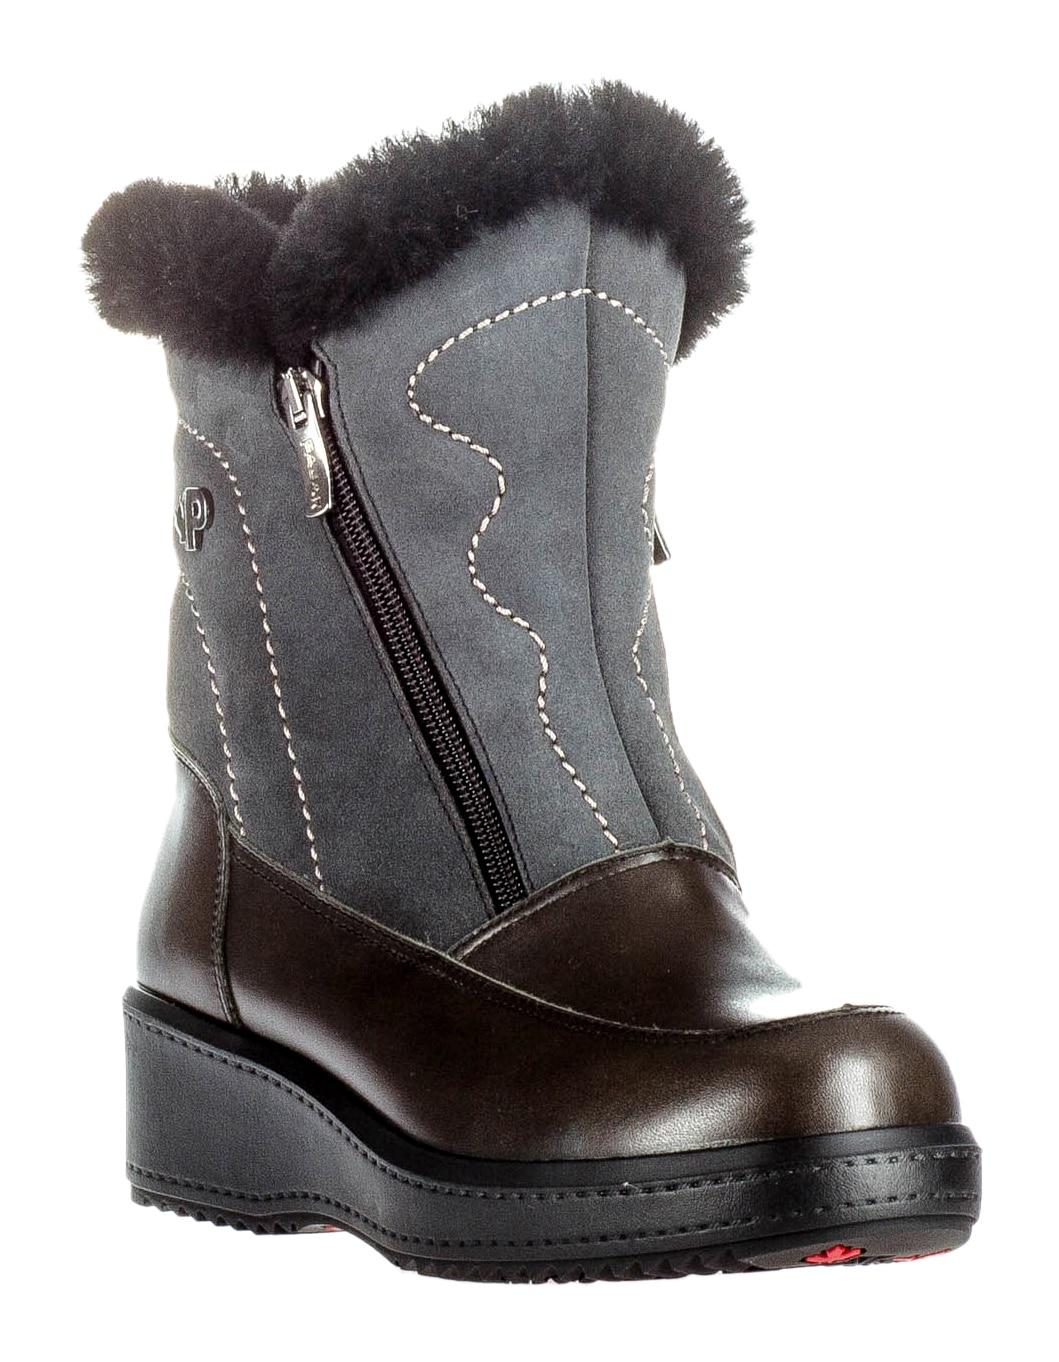 Buy Pajar Mia Mid-Shaft Boot - Shoes & Handbags - Women's Shoes - Boots - Online  Shopping for Canadians